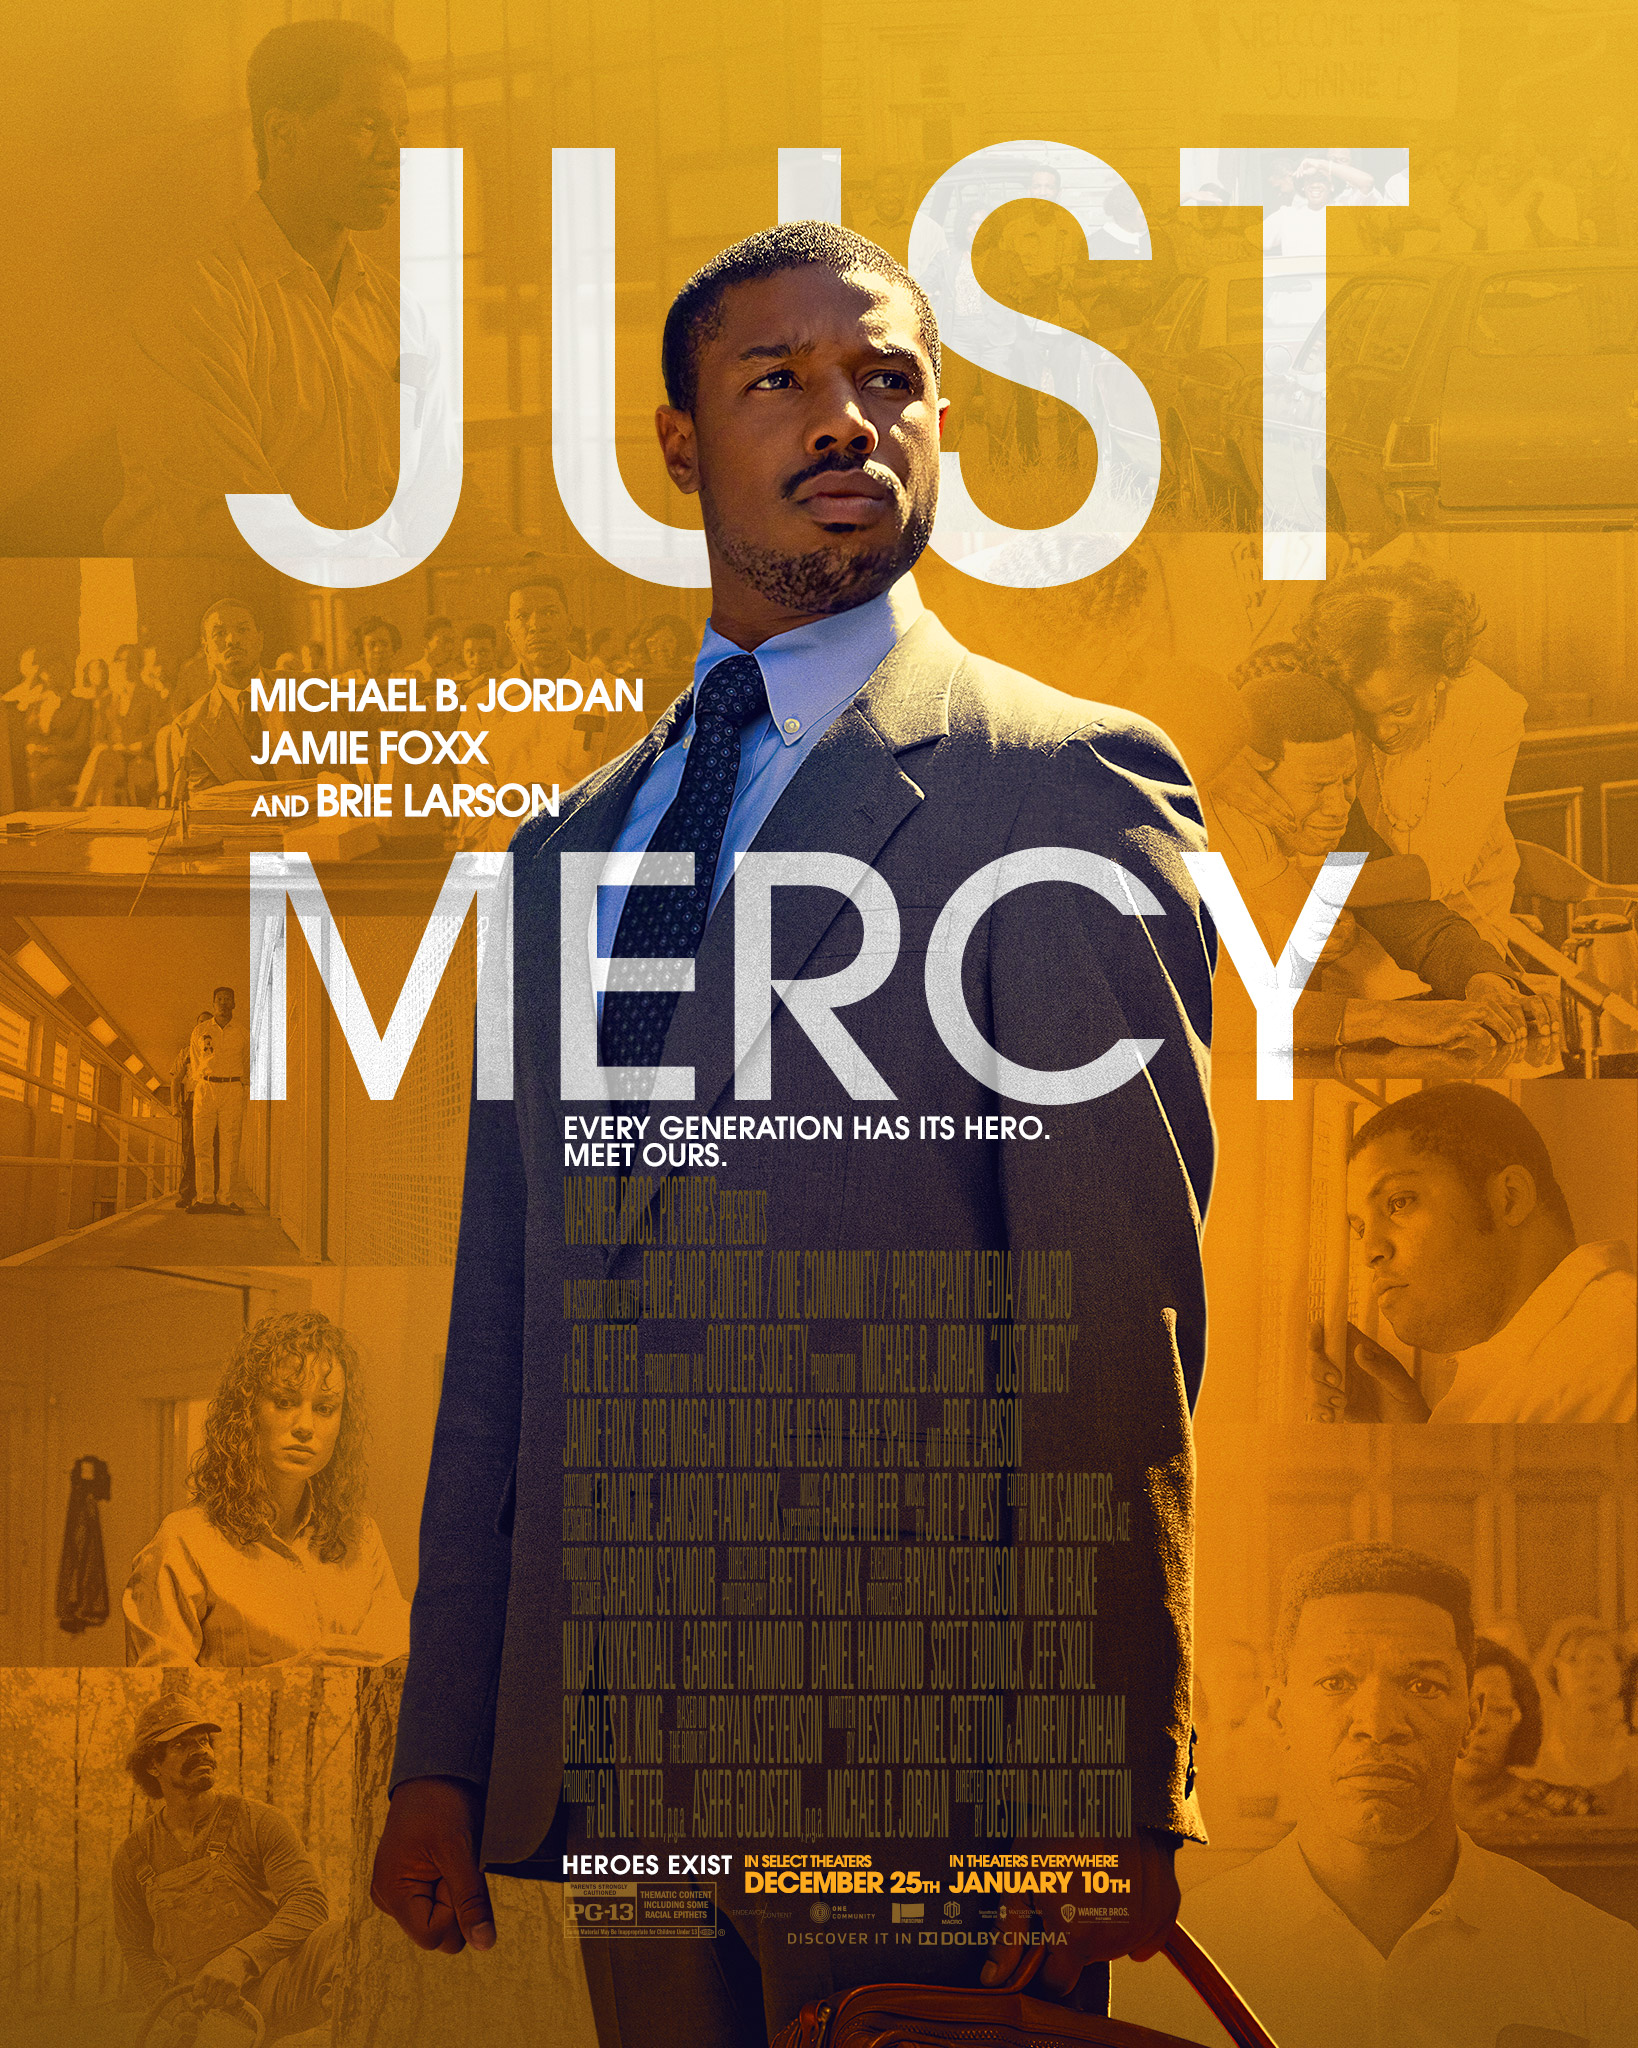 Michael B. Jordan featured on the Just Mercy movie poster.